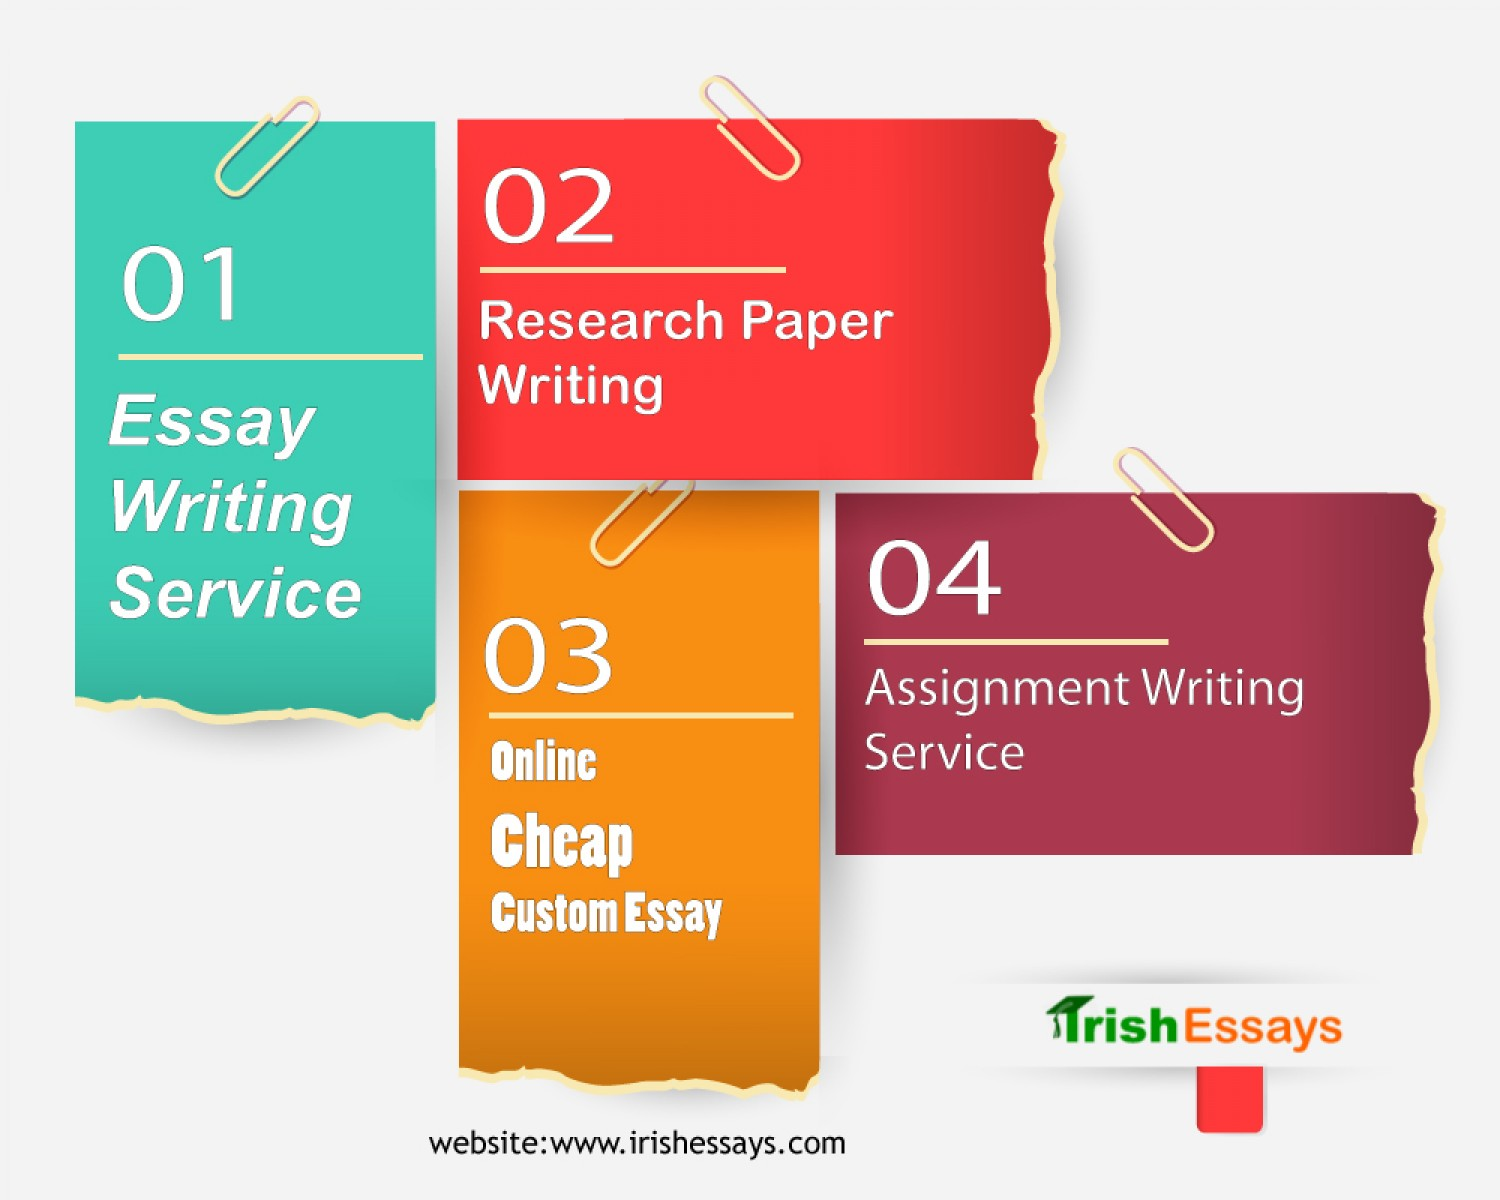 006 Essay Example Pay For Essays Now You Can Online Professional Writing 542f94964d34f W1500 Dreaded Cheap Uk Magazines That Full